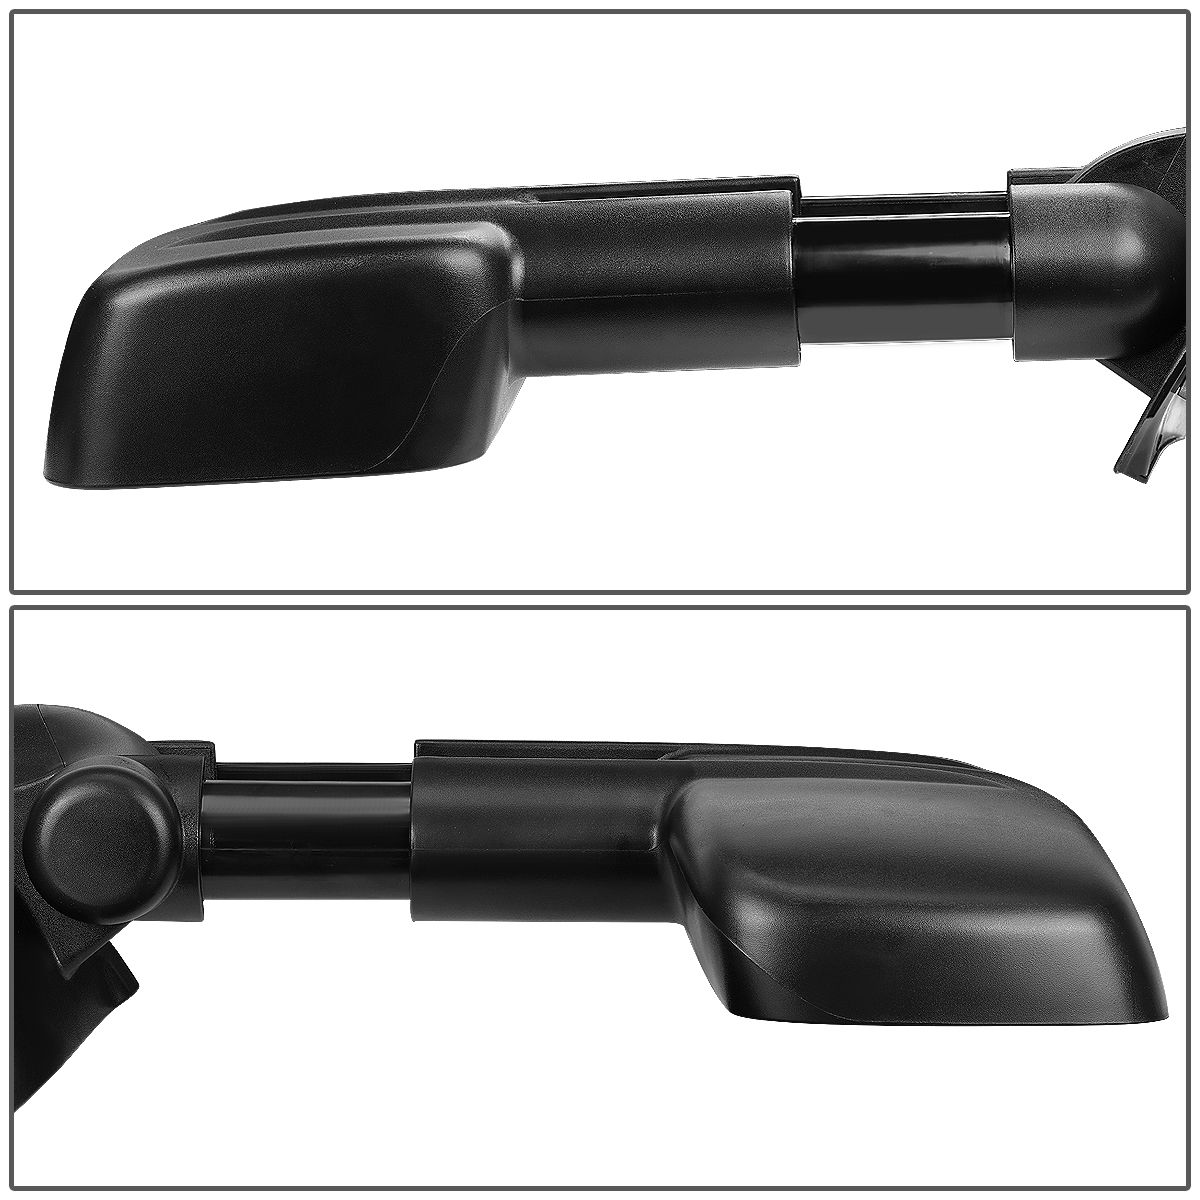 97-03 Ford F150 / F250 (Heavy Duty Size) Extendable ...